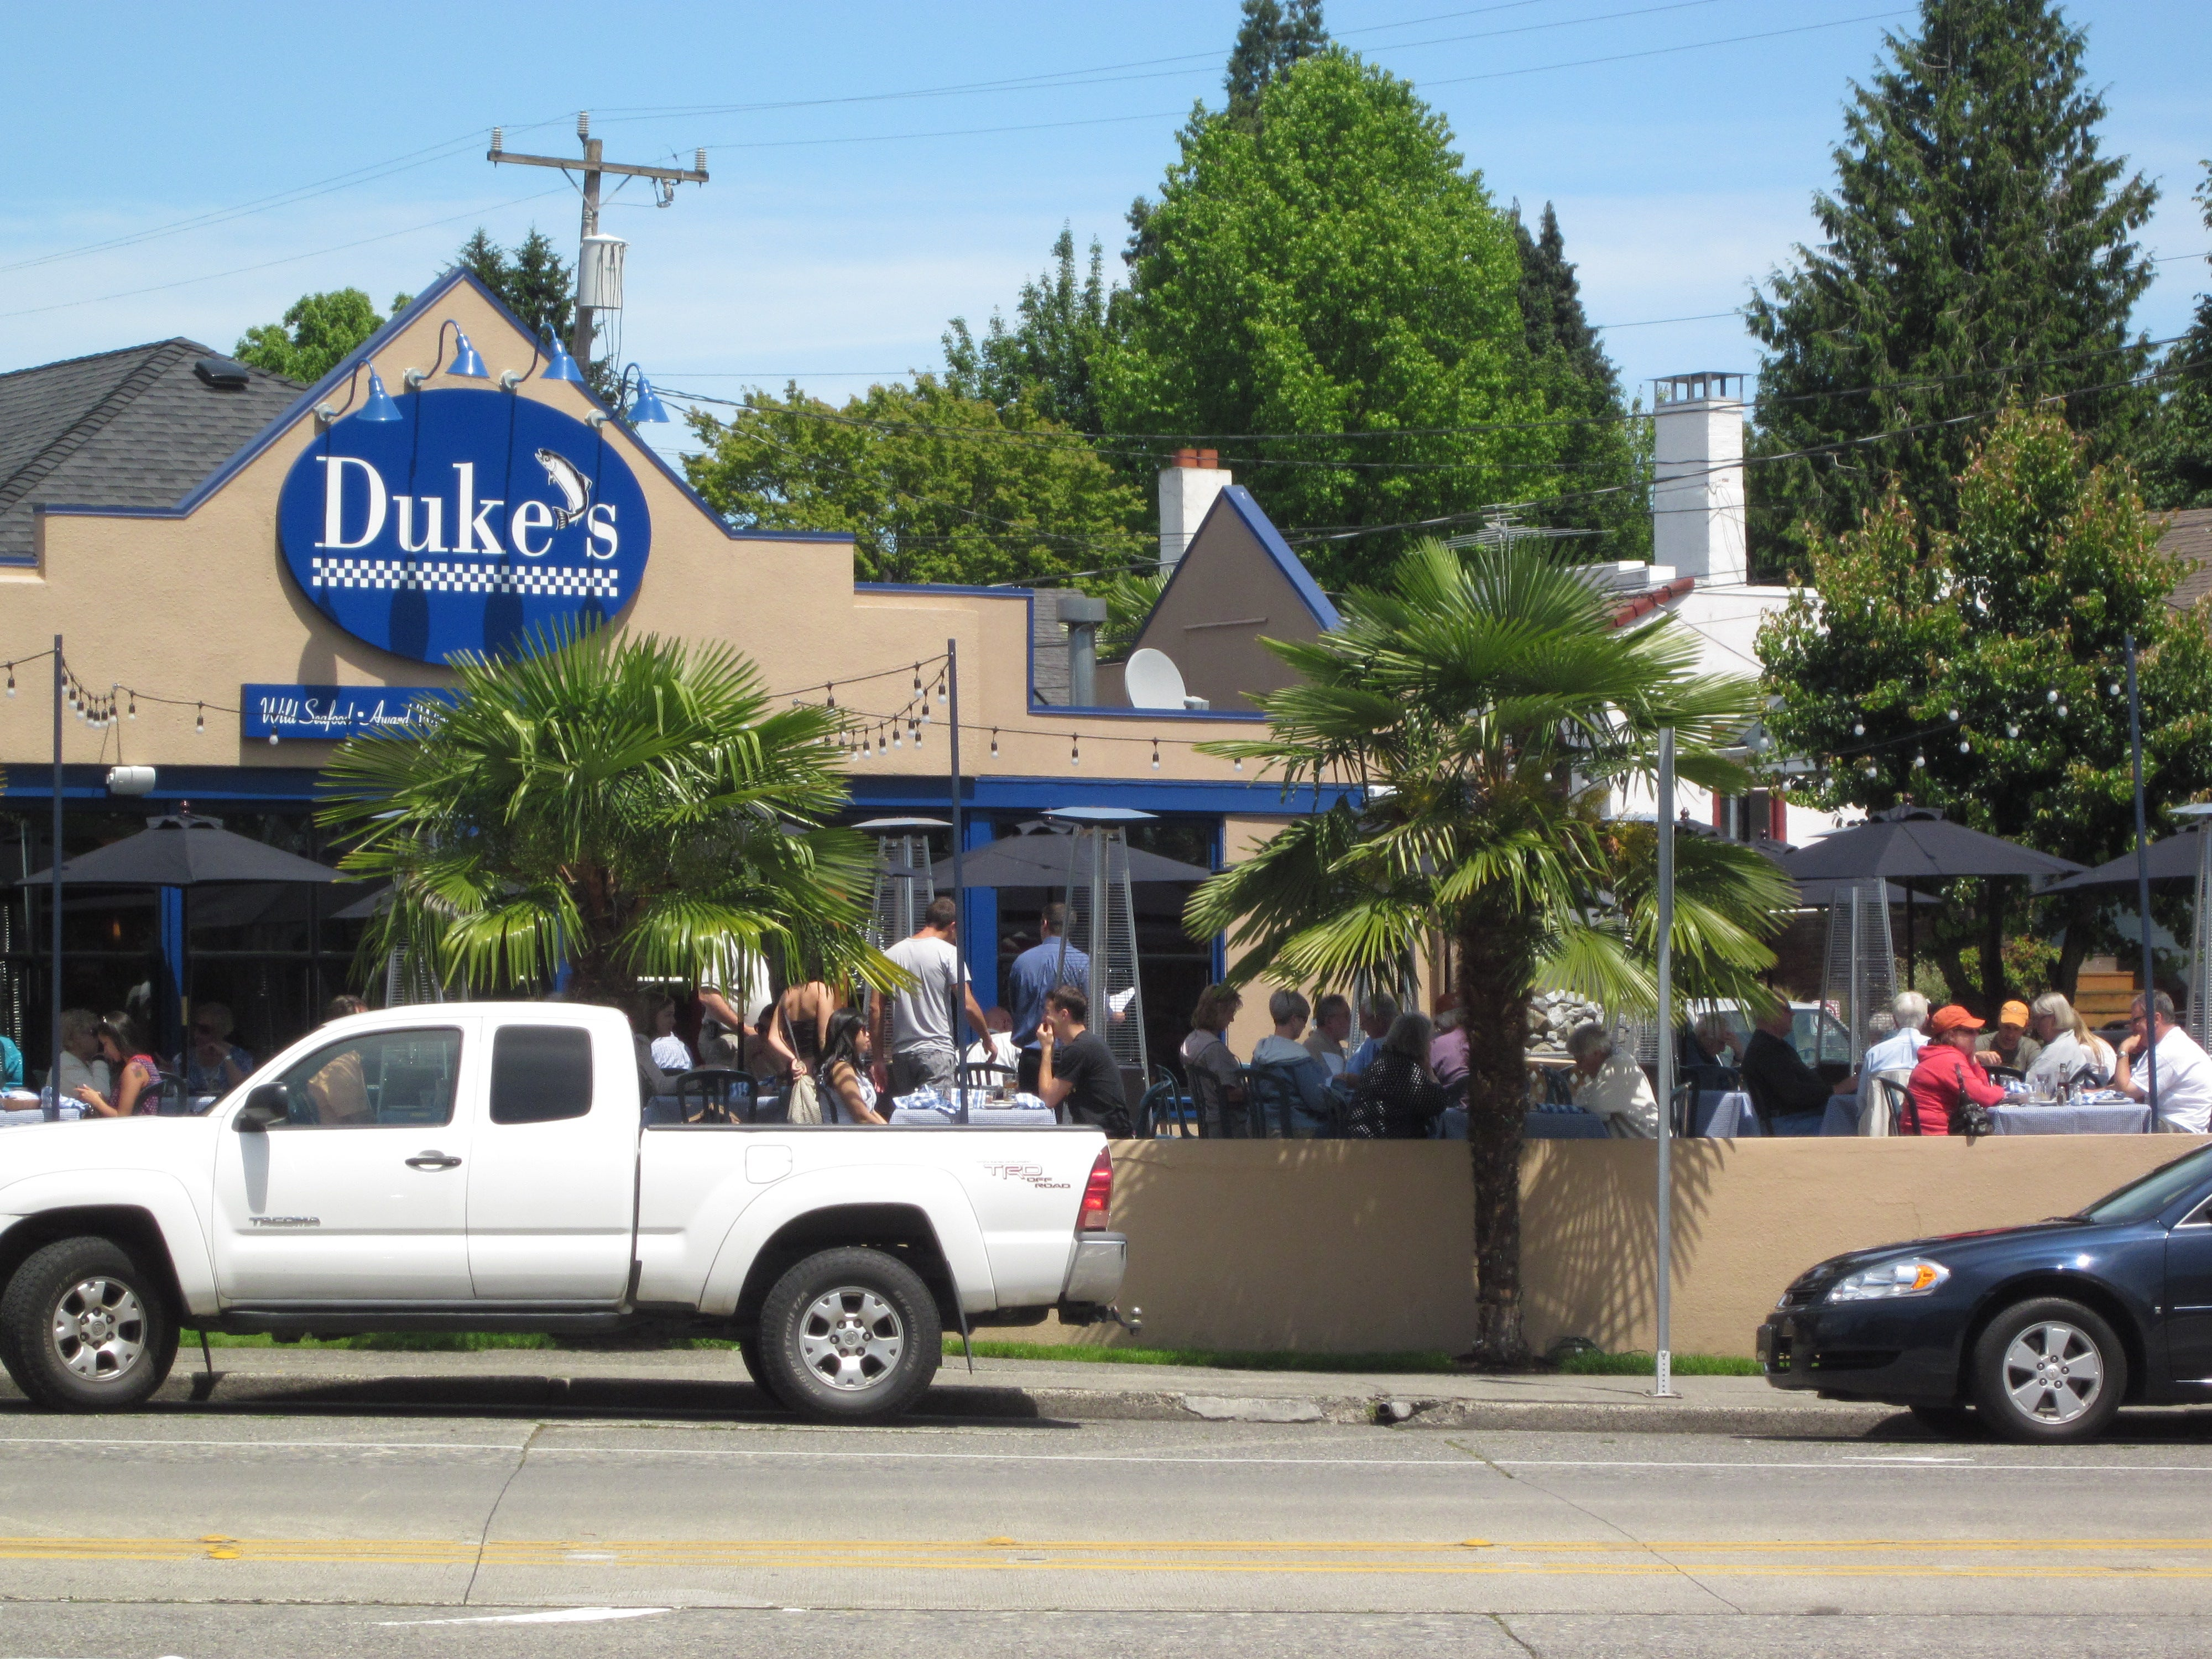 Duke S Chowder House In Seattle Parent Reviews On Winnie